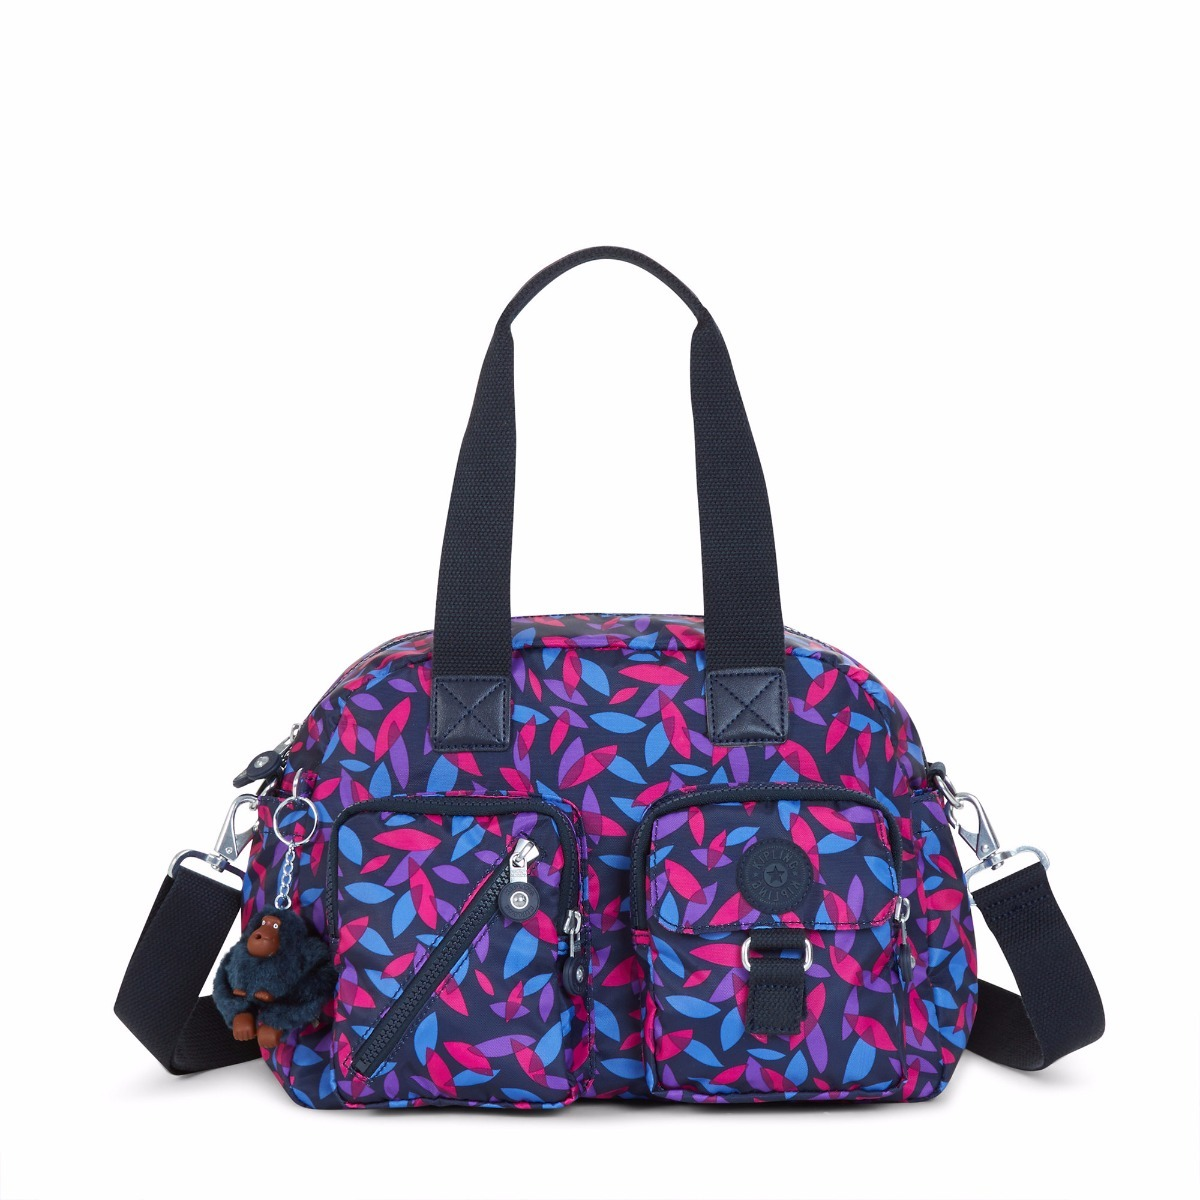 Color 445 Bolsa Modelo Willow Defea 00 Breeze1 Kipling En w0POnk